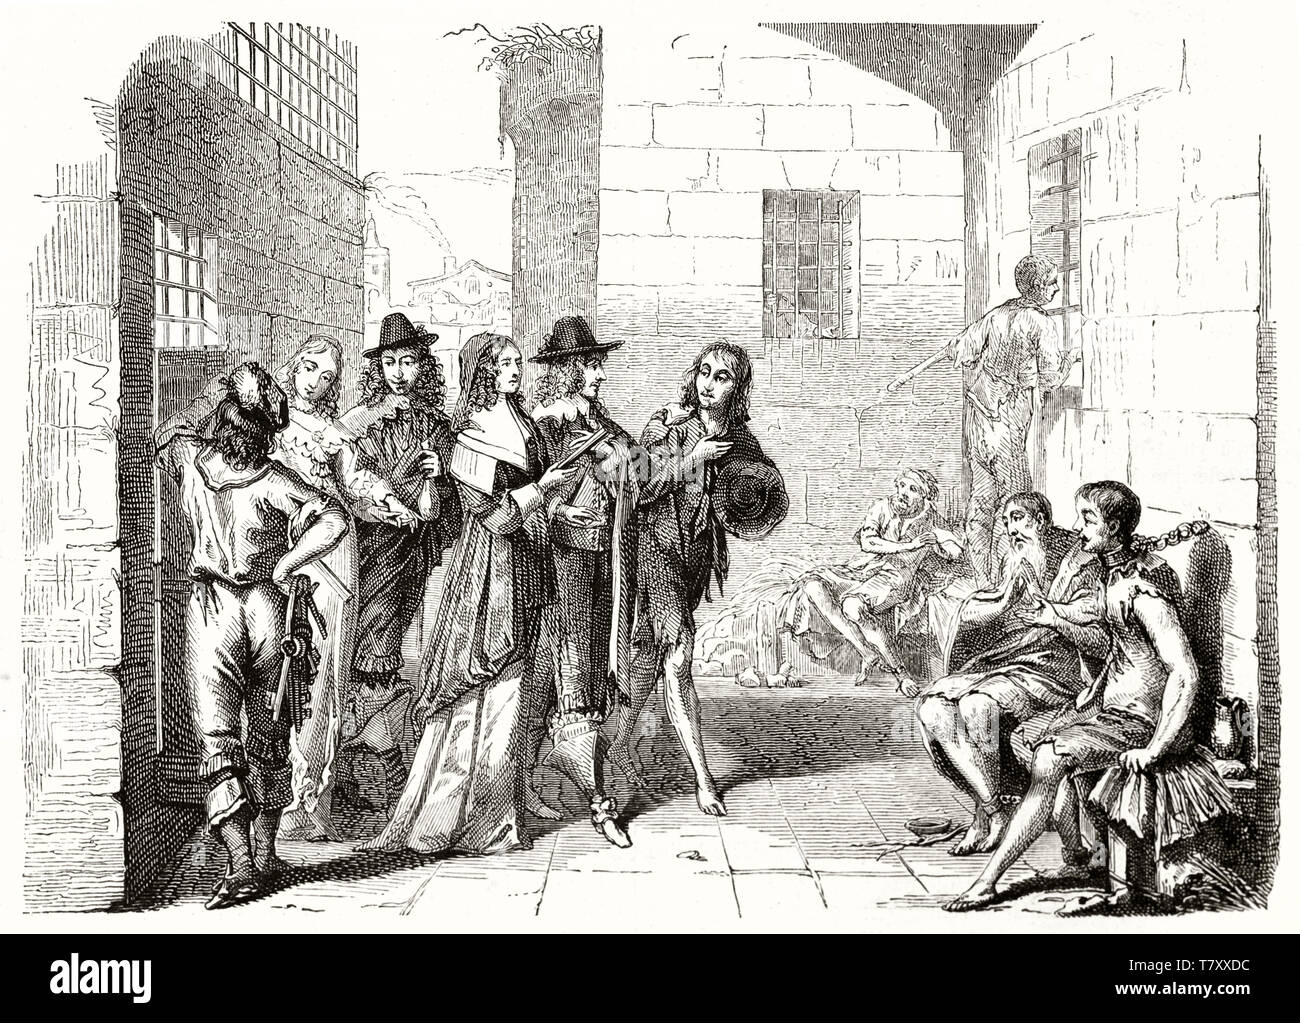 Old illustration depicting prison interior in 17th century. By Bosse, publ. on Magasin Pittoresque, Paris, 1848 - Stock Image